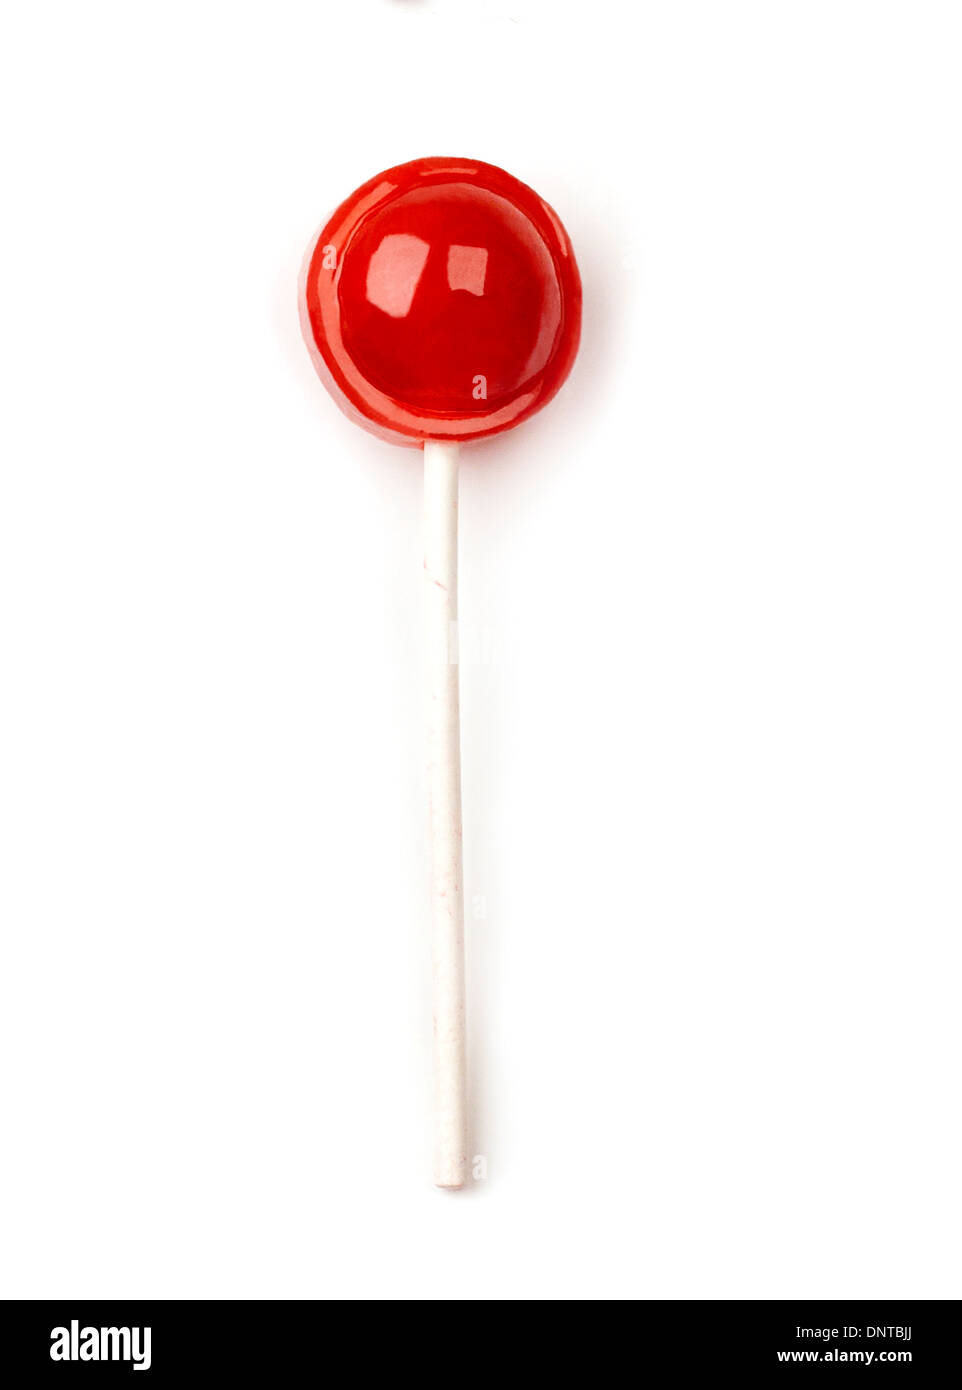 Single unwrapped tootsie roll pop - Stock Image